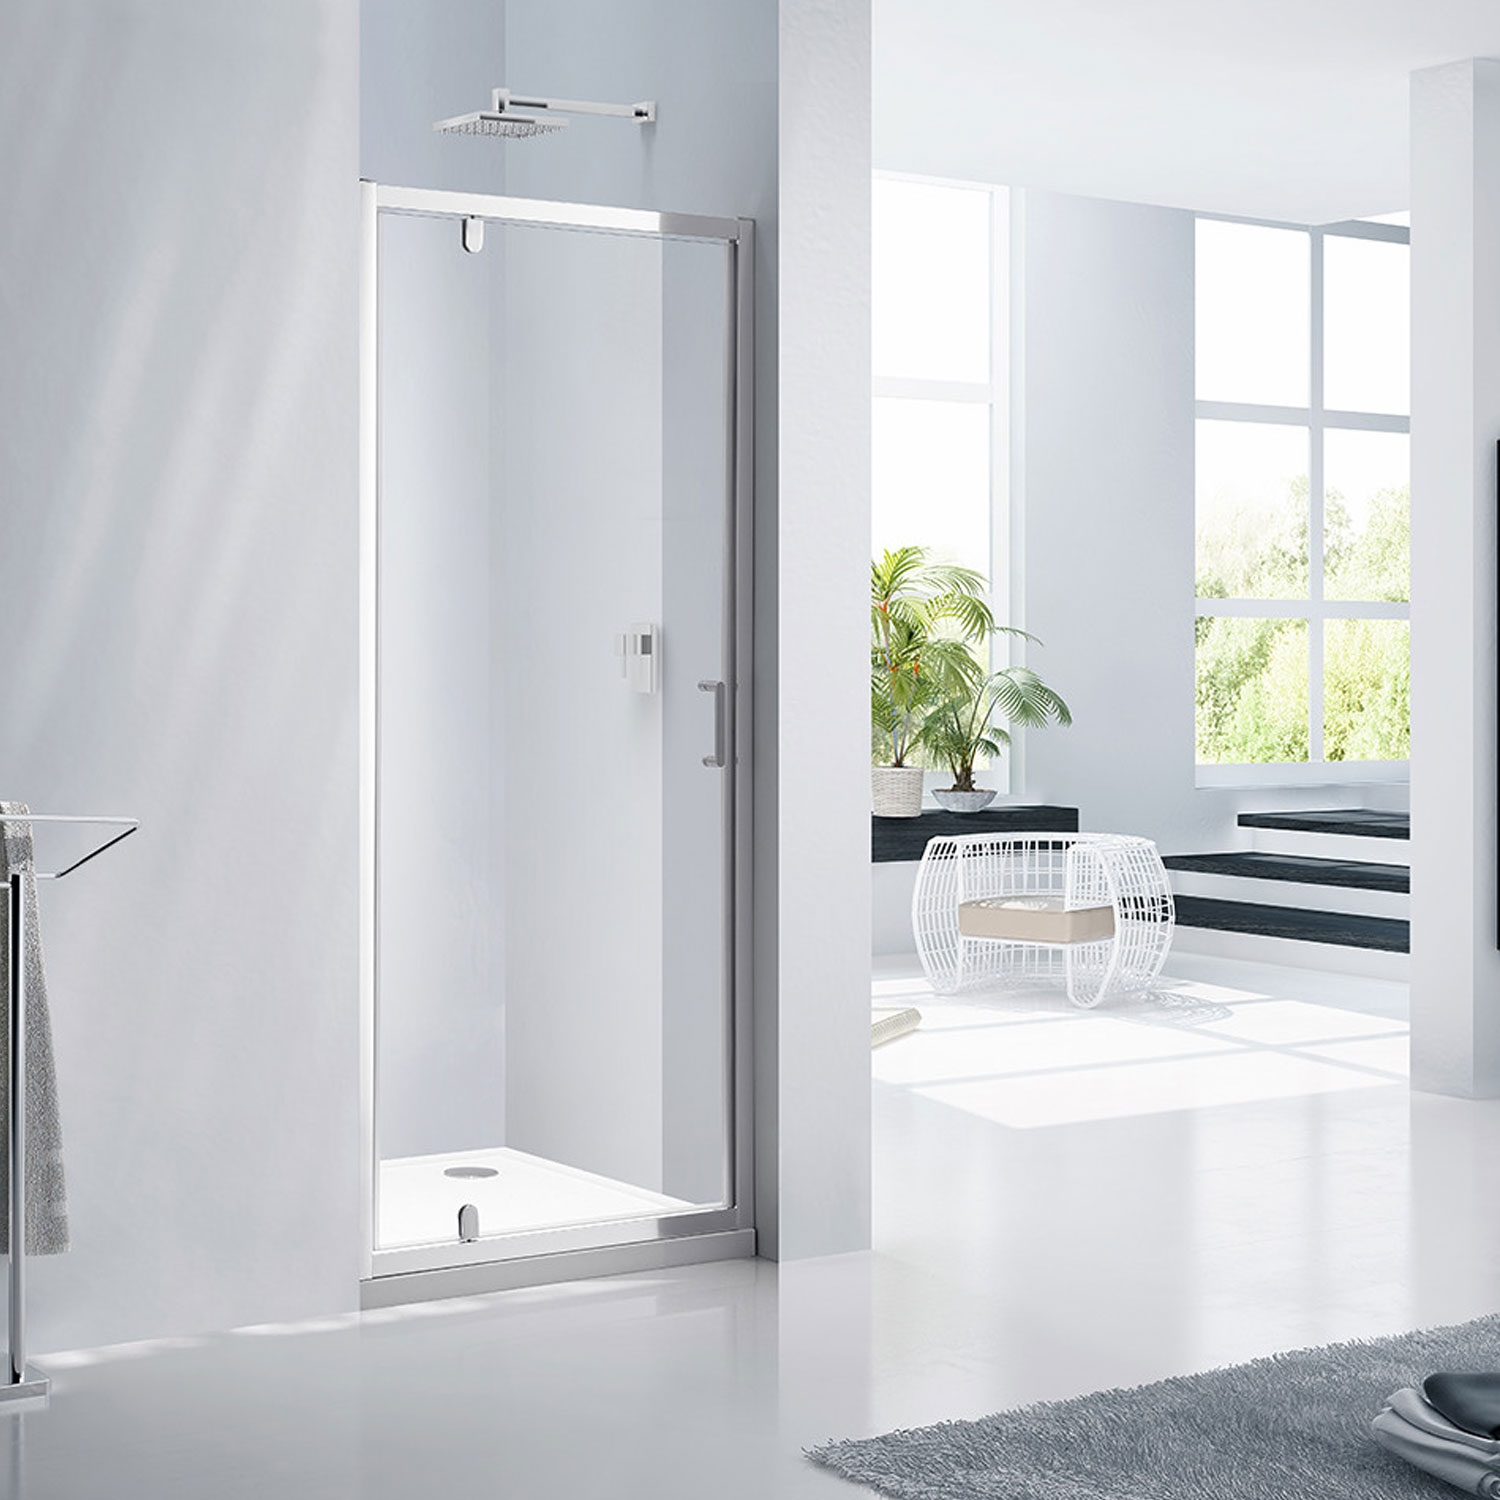 Verona Aquaglass Purity Pivot Shower Door 900mm Wide - 6mm Glass